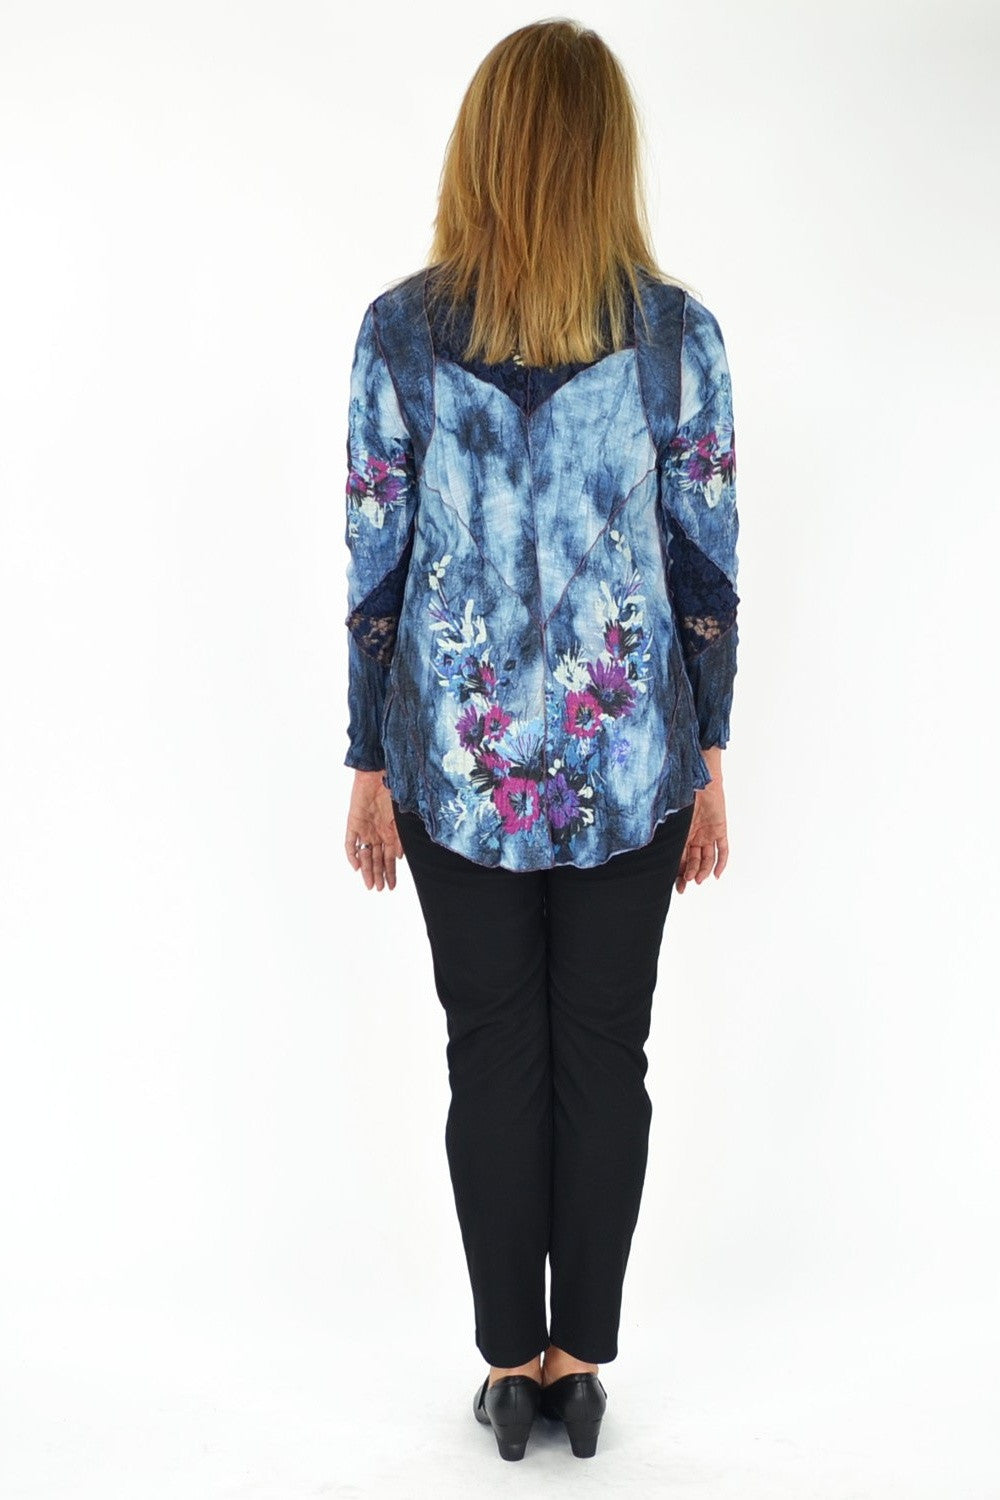 Maryanne Cardigan - at I Love Tunics @ www.ilovetunics.com = Number One! Tunics Destination